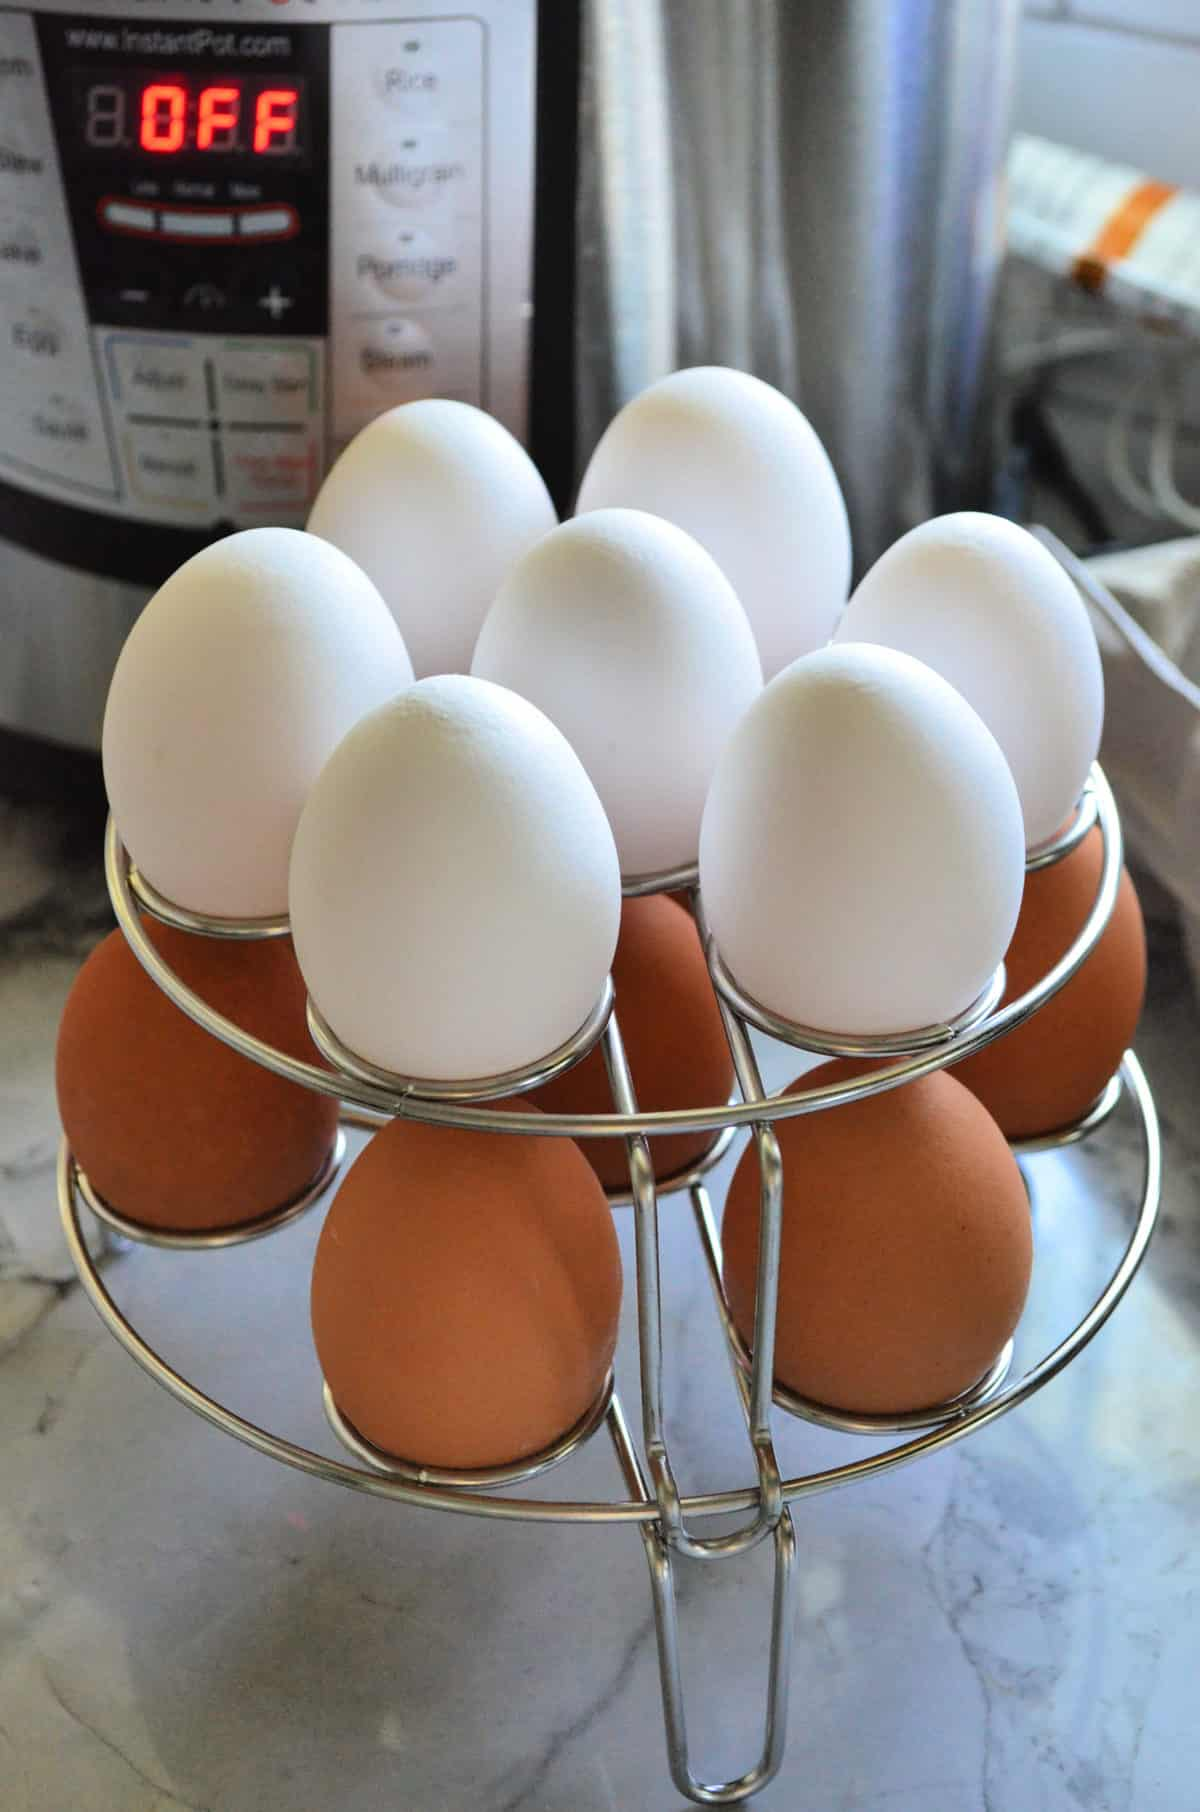 14 eggs resting on 2-level wire egg rack in front of instant pot.